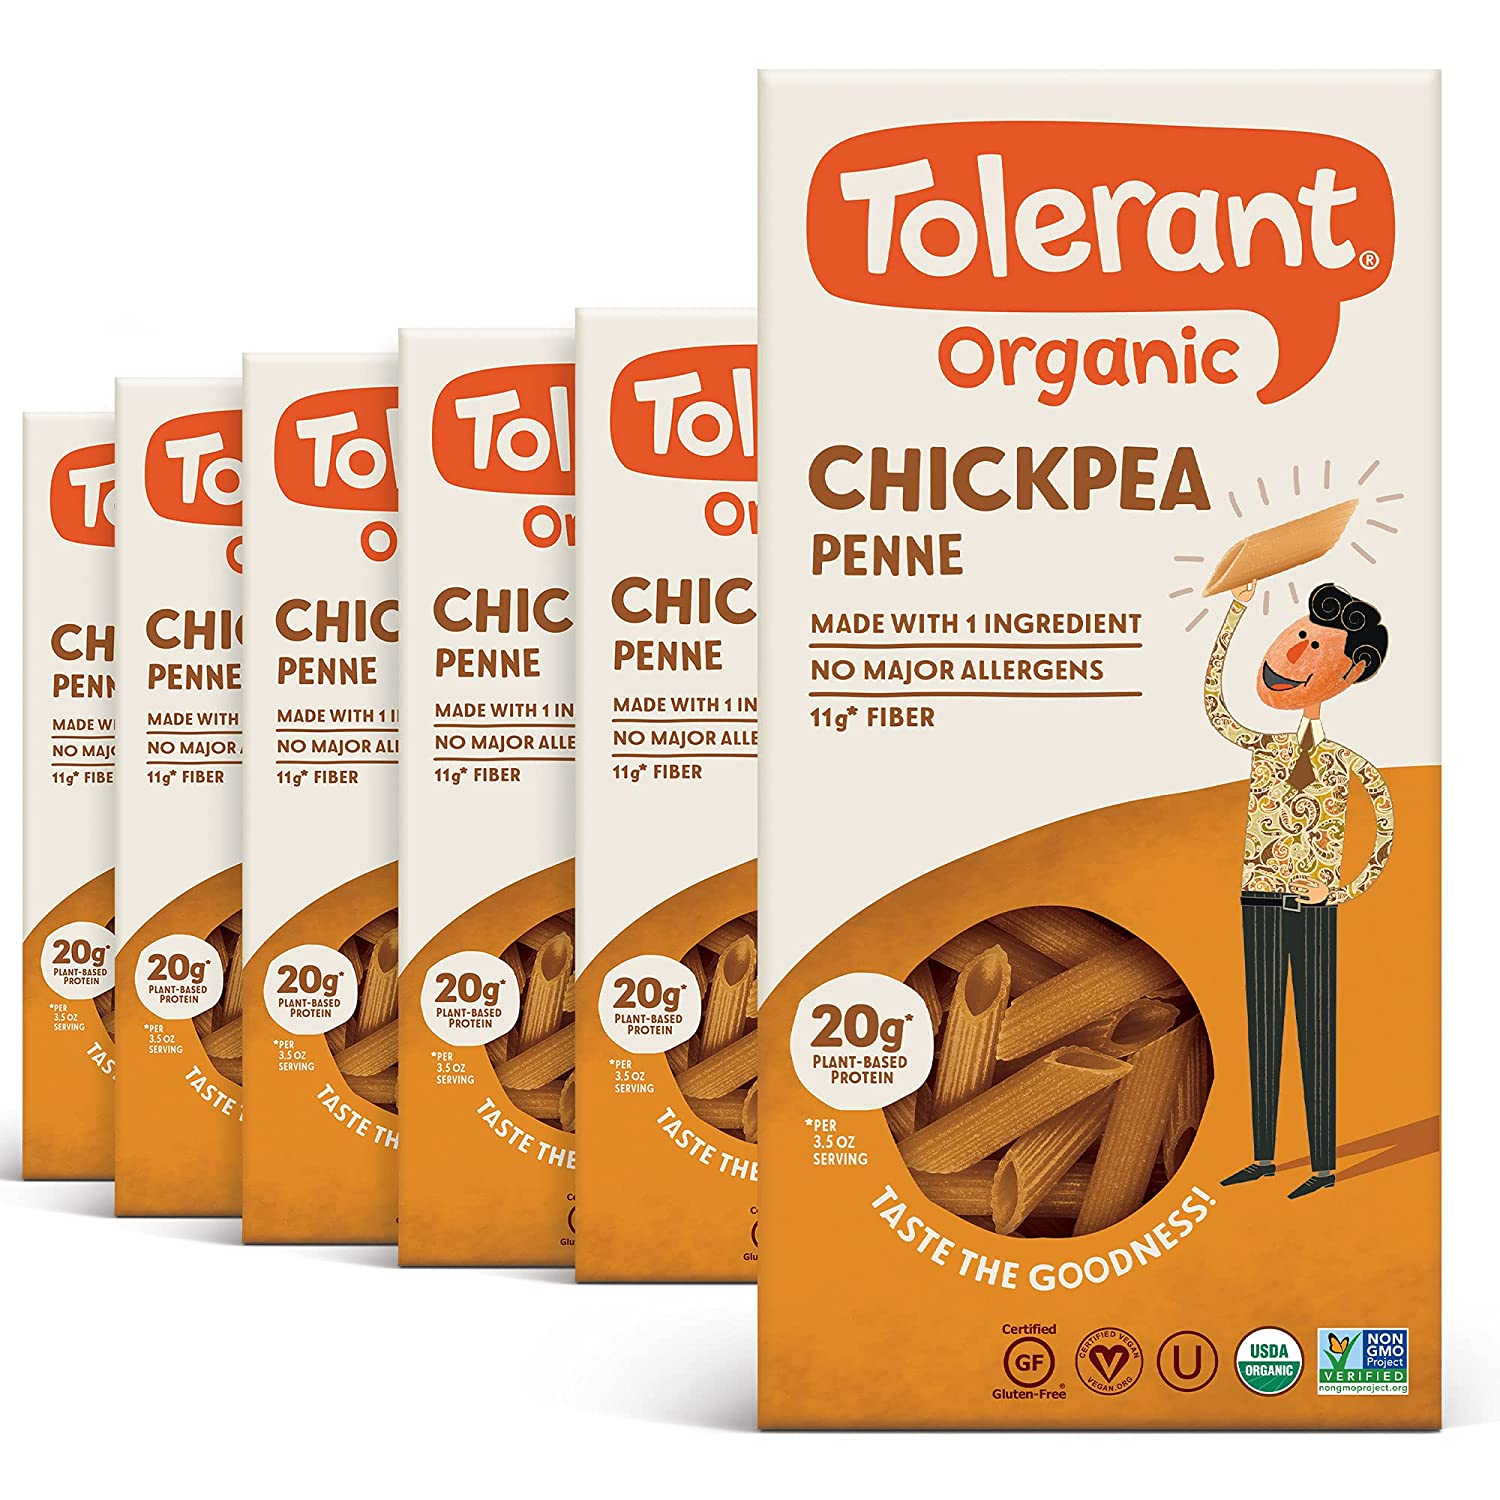 Tolerant Organic Gluten Free Chickpea Penne Pasta, 8 Ounce Box (Case of 6), Plant Based Protein, Vegan Pasta, Single Ingredient Protein Pasta, Whole Food, Clean Pasta, Low Glycemic Index Pasta